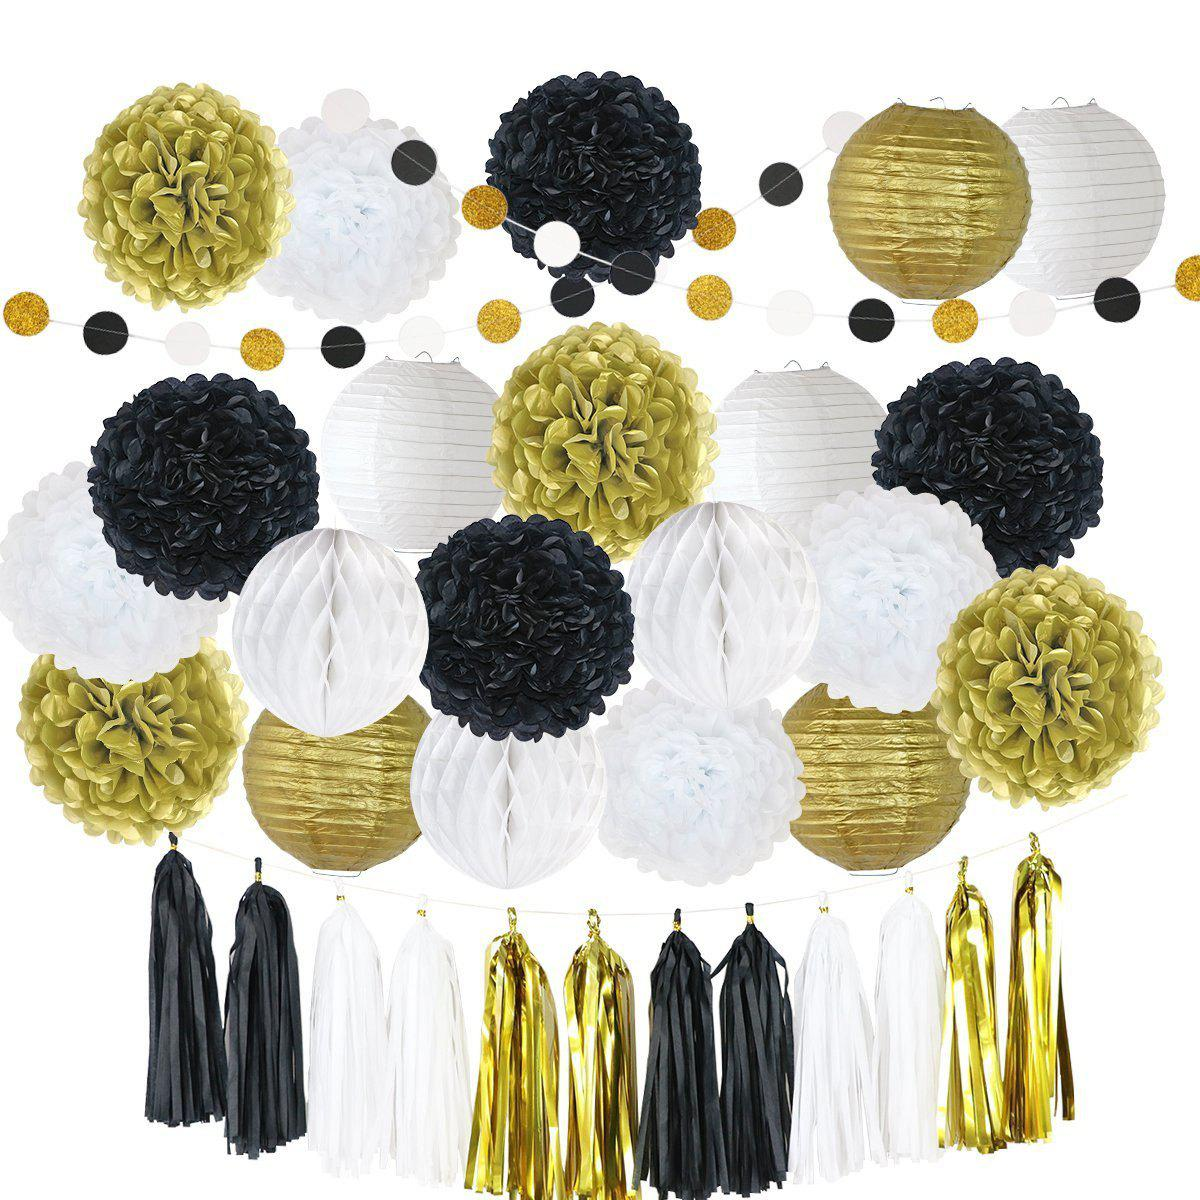 Black gold 81pcs 81pcs tissue paper pom poms flowers kit paper shop 81pcs tissue paper pom poms flowers kit paper lanterns hanging dot paper garland honeycomb balls mightylinksfo